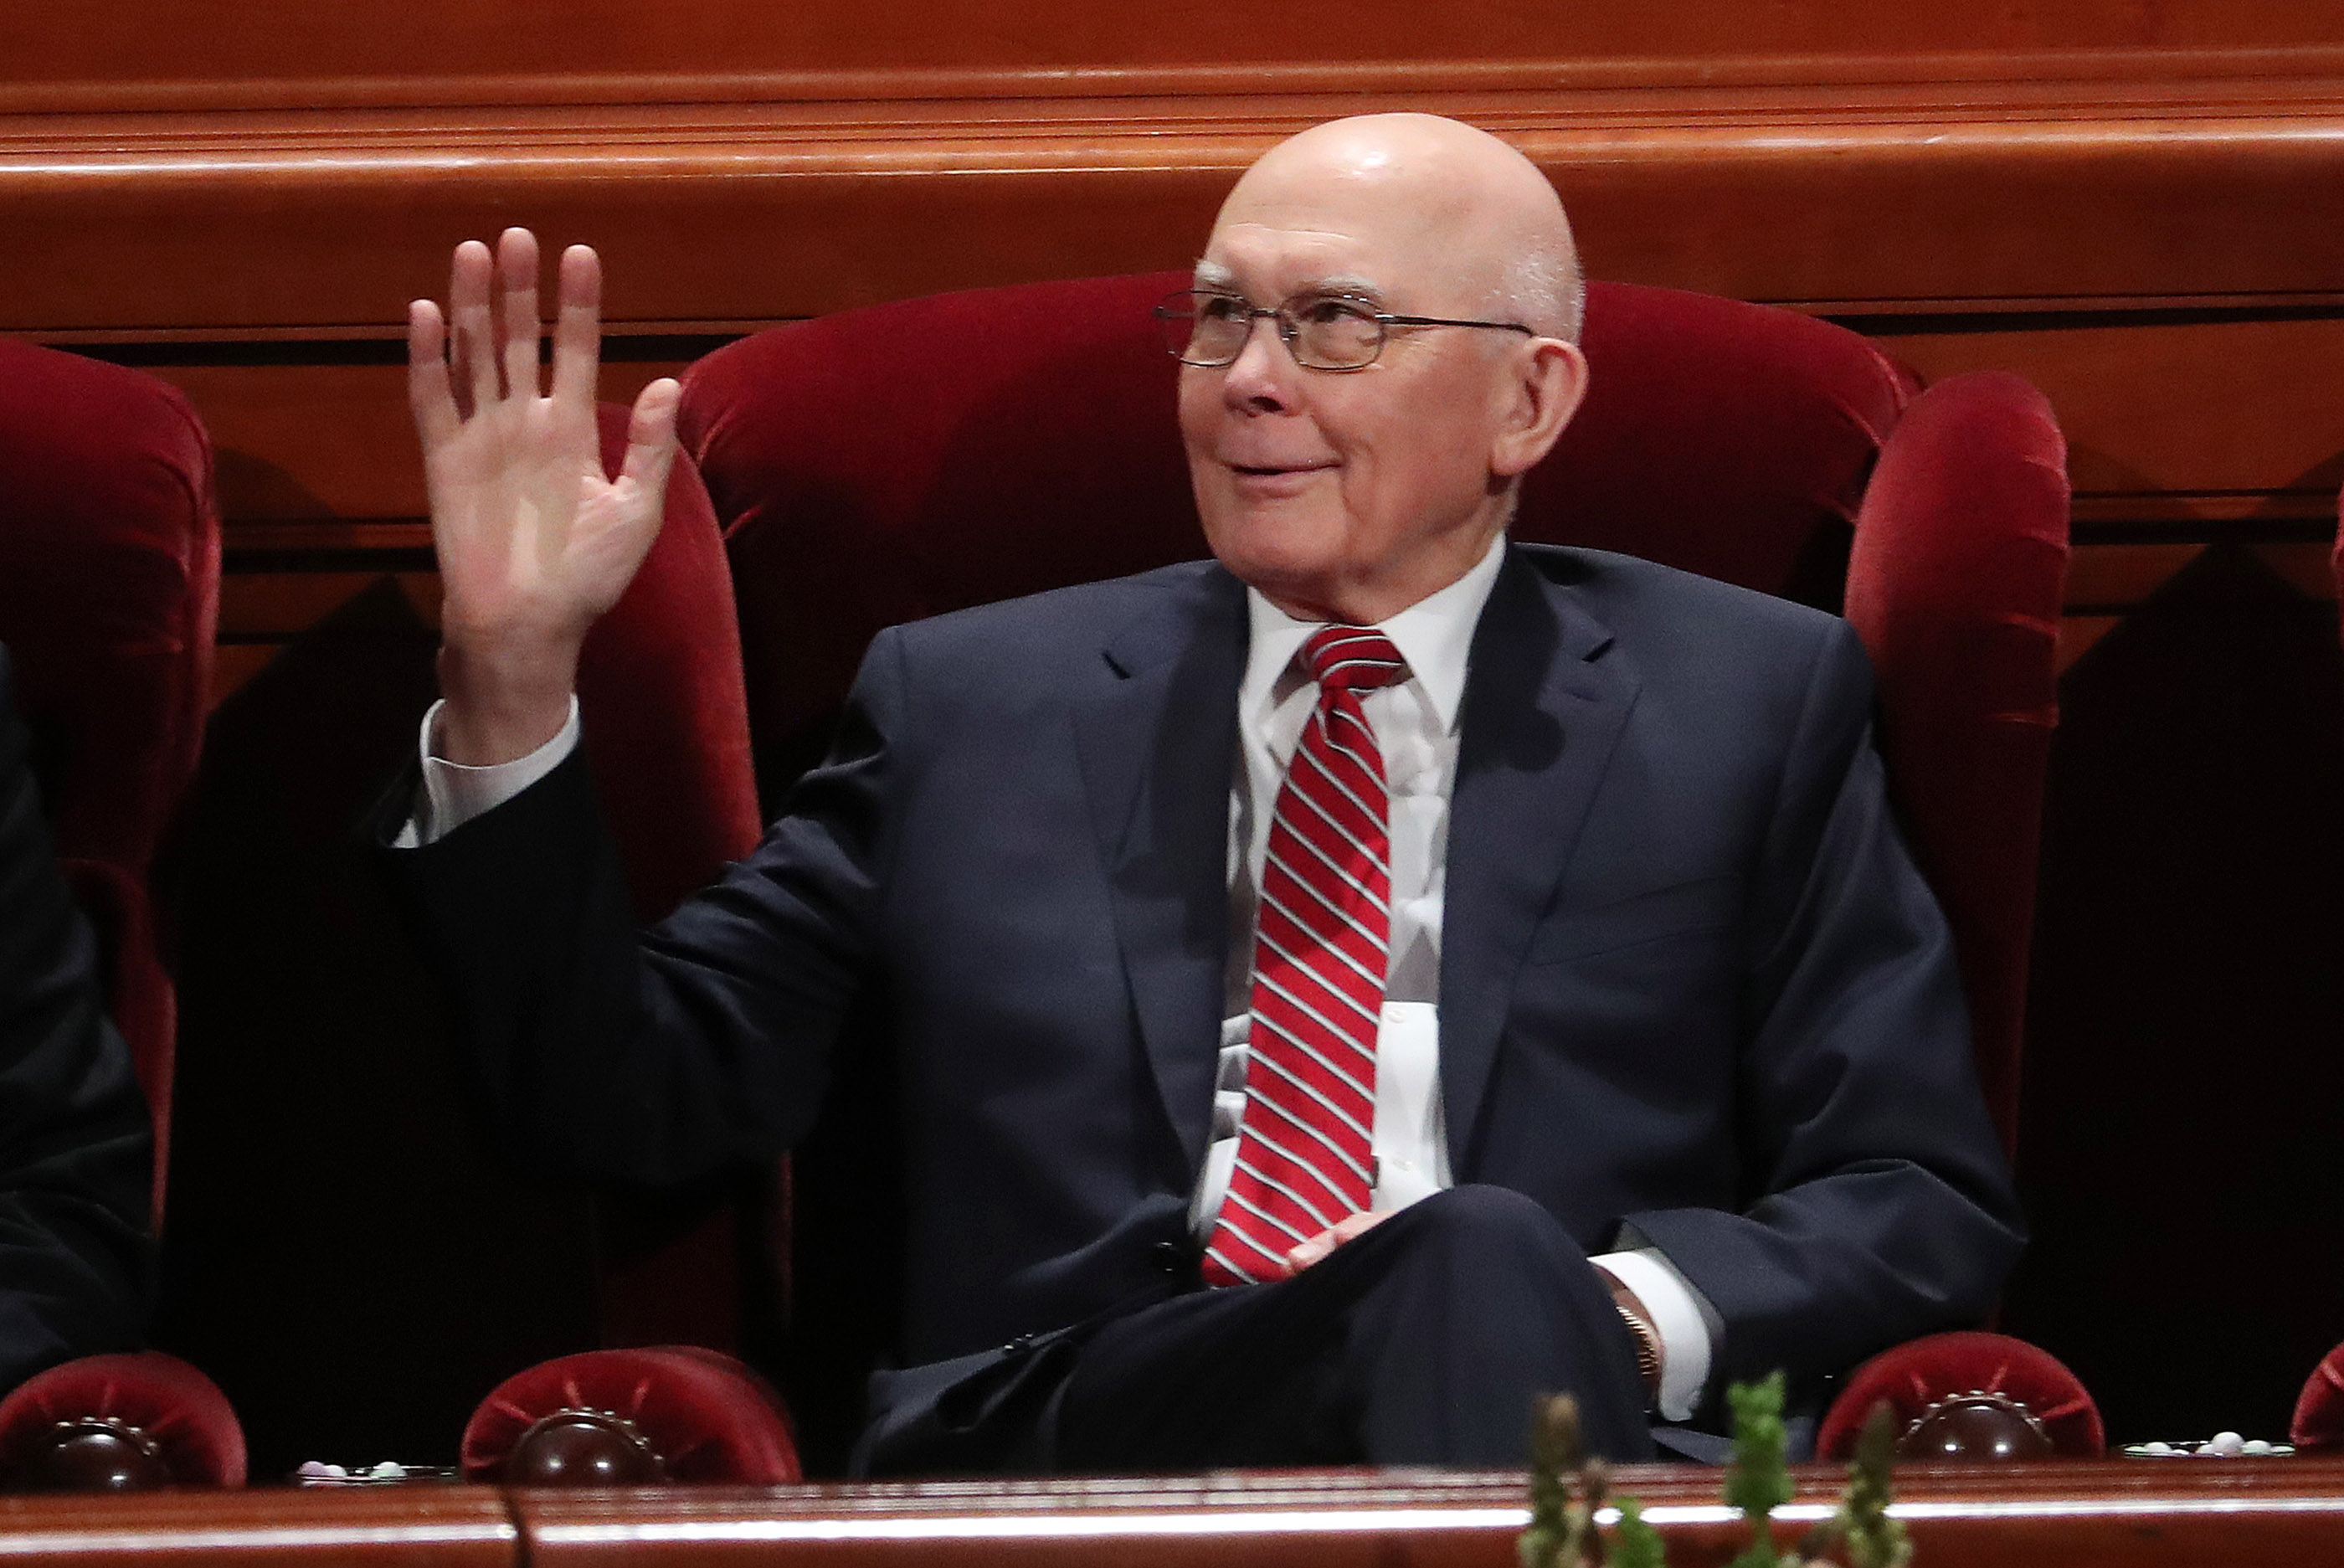 President Dallin H. Oaks, first counselor in the First Presidency, waves prior to the 189th Annual General Conference of The Church of Jesus Christ of Latter-day Saints in Salt Lake City on Sunday, April 7, 2019.